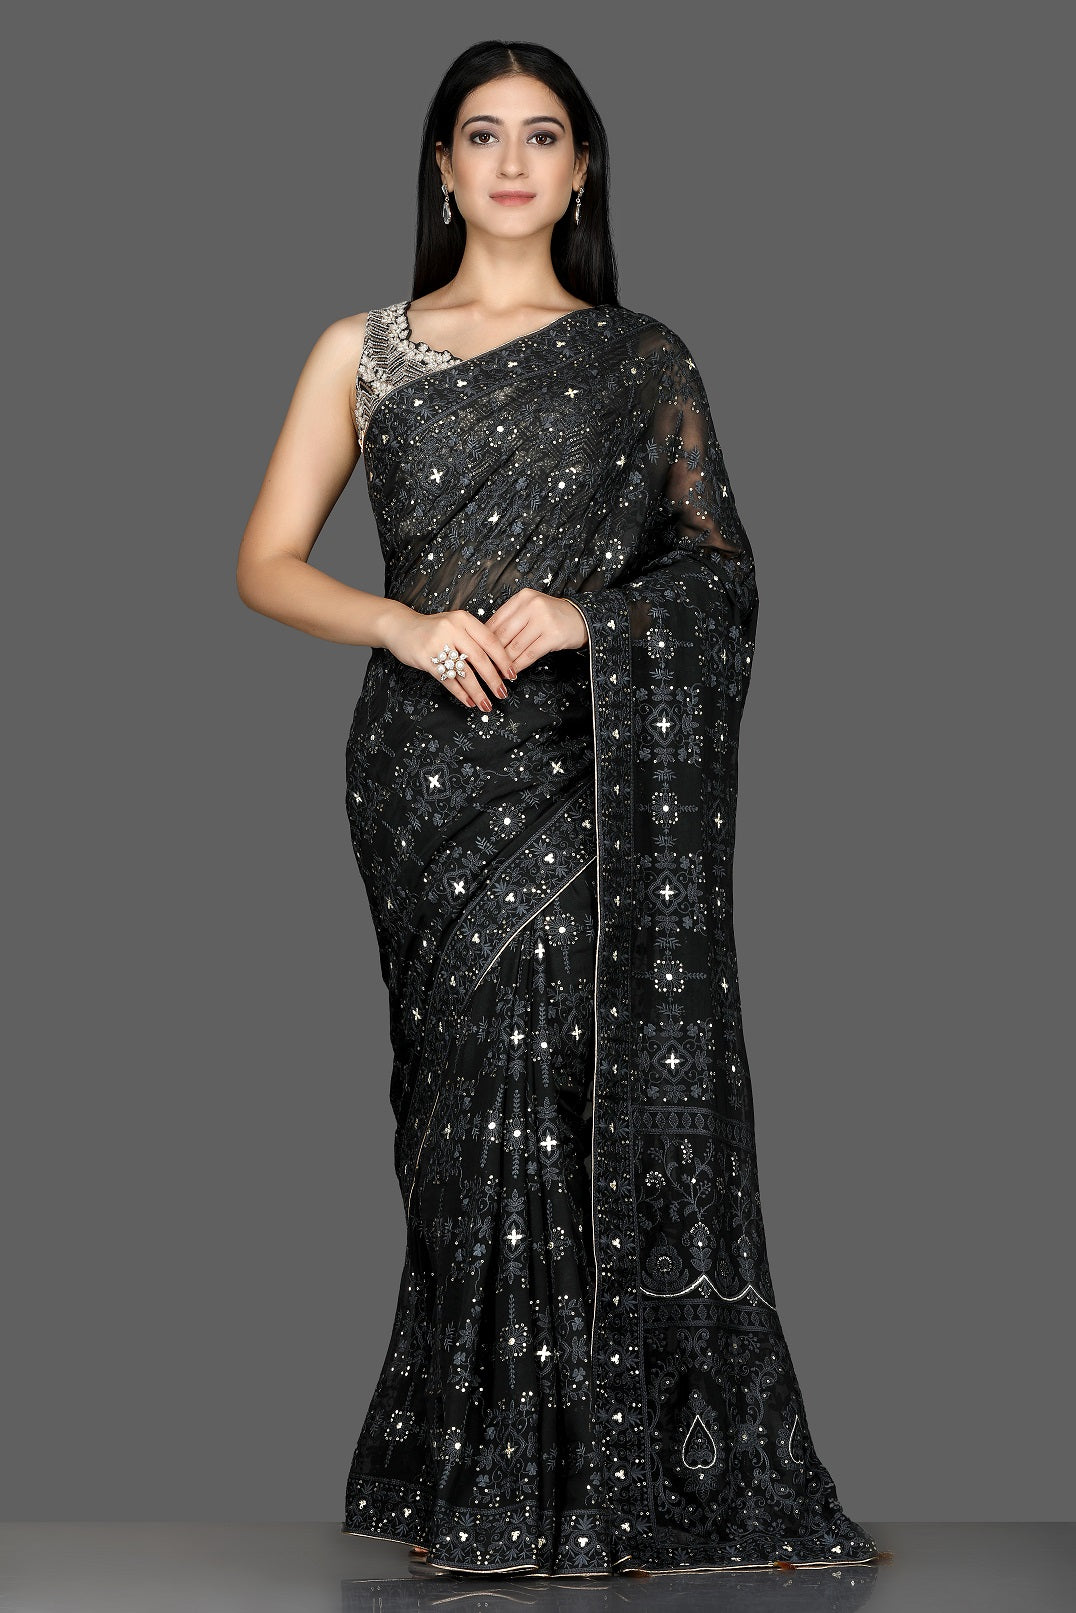 Buy black Lucknowi georgette saree online in USA with embroidered sari blouse. Shine at weddings and special occasions with beautiful embroidered sarees, designer sari with blouse in USA from Pure Elegance Indian clothing in USA.-full view